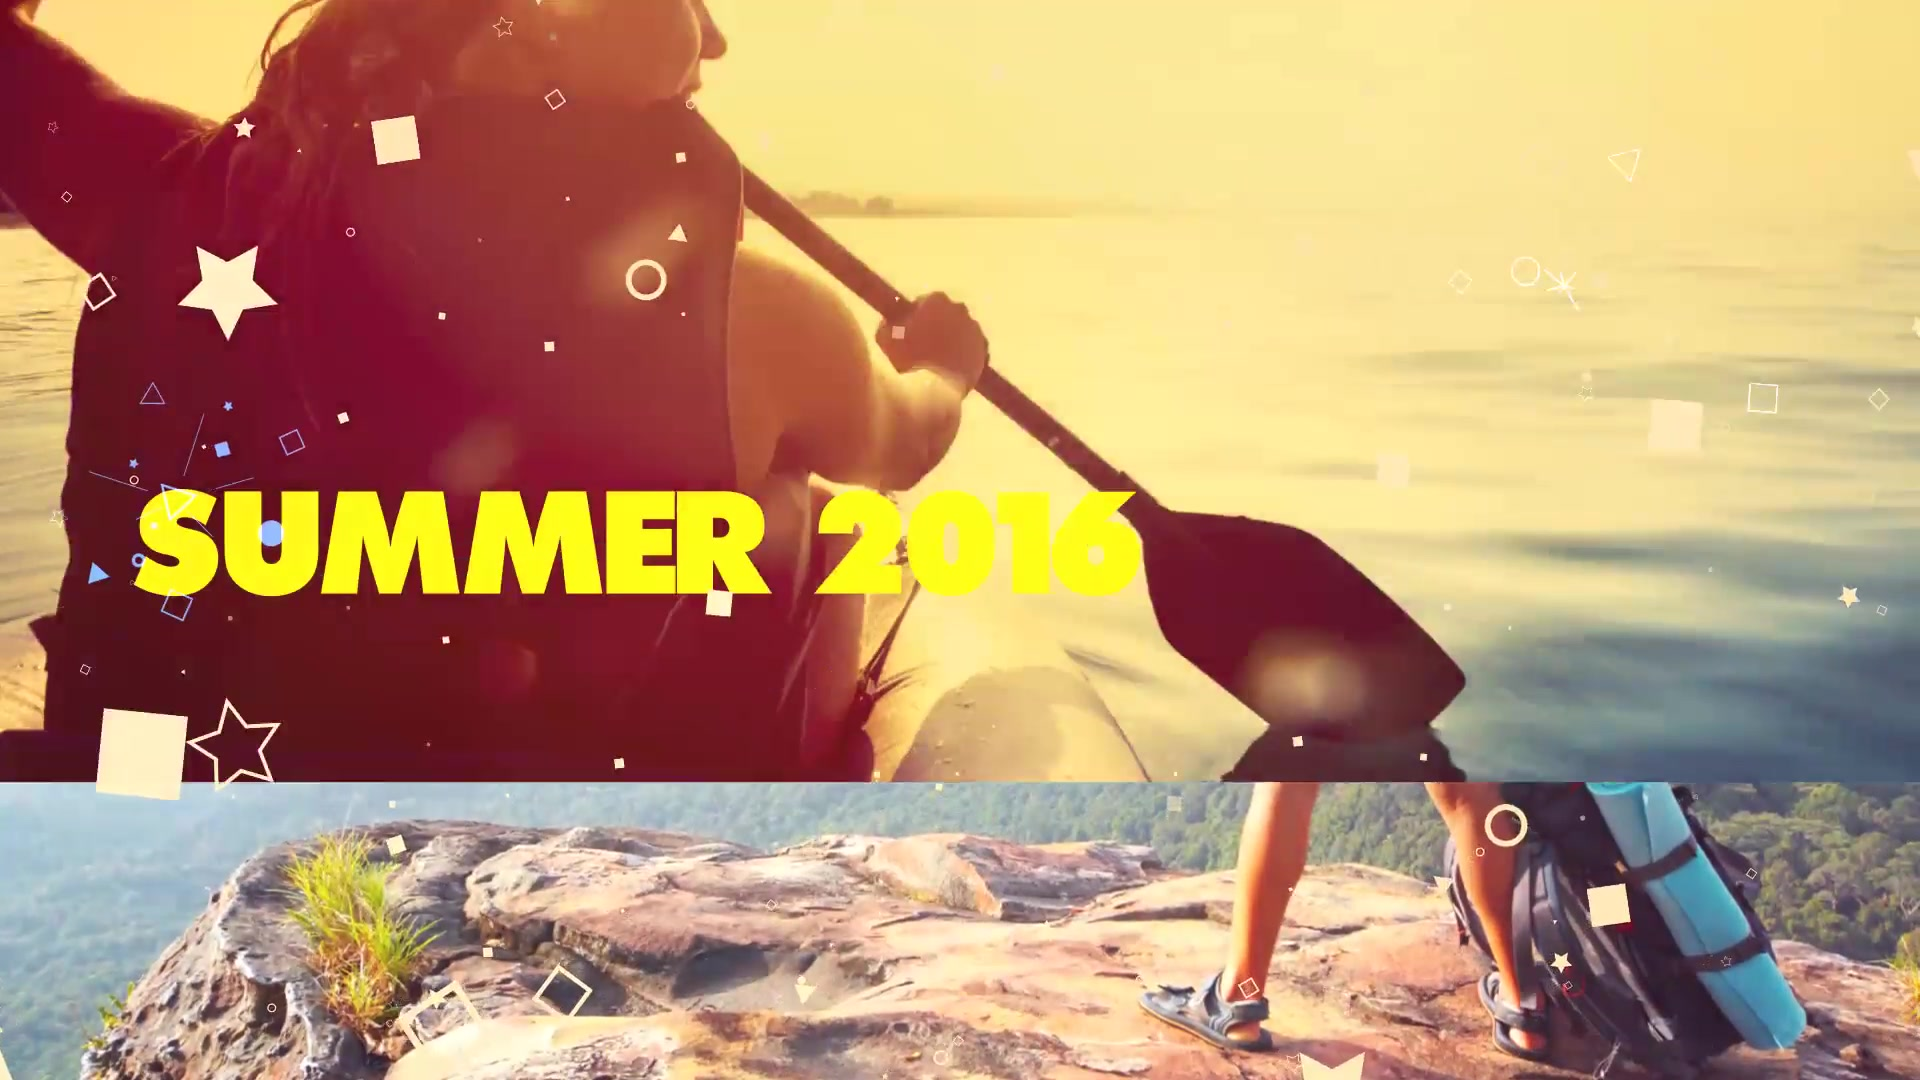 100 Shots of Summer Typography Kinetic Slideshow Videohive 29360617 Premiere Pro Image 2